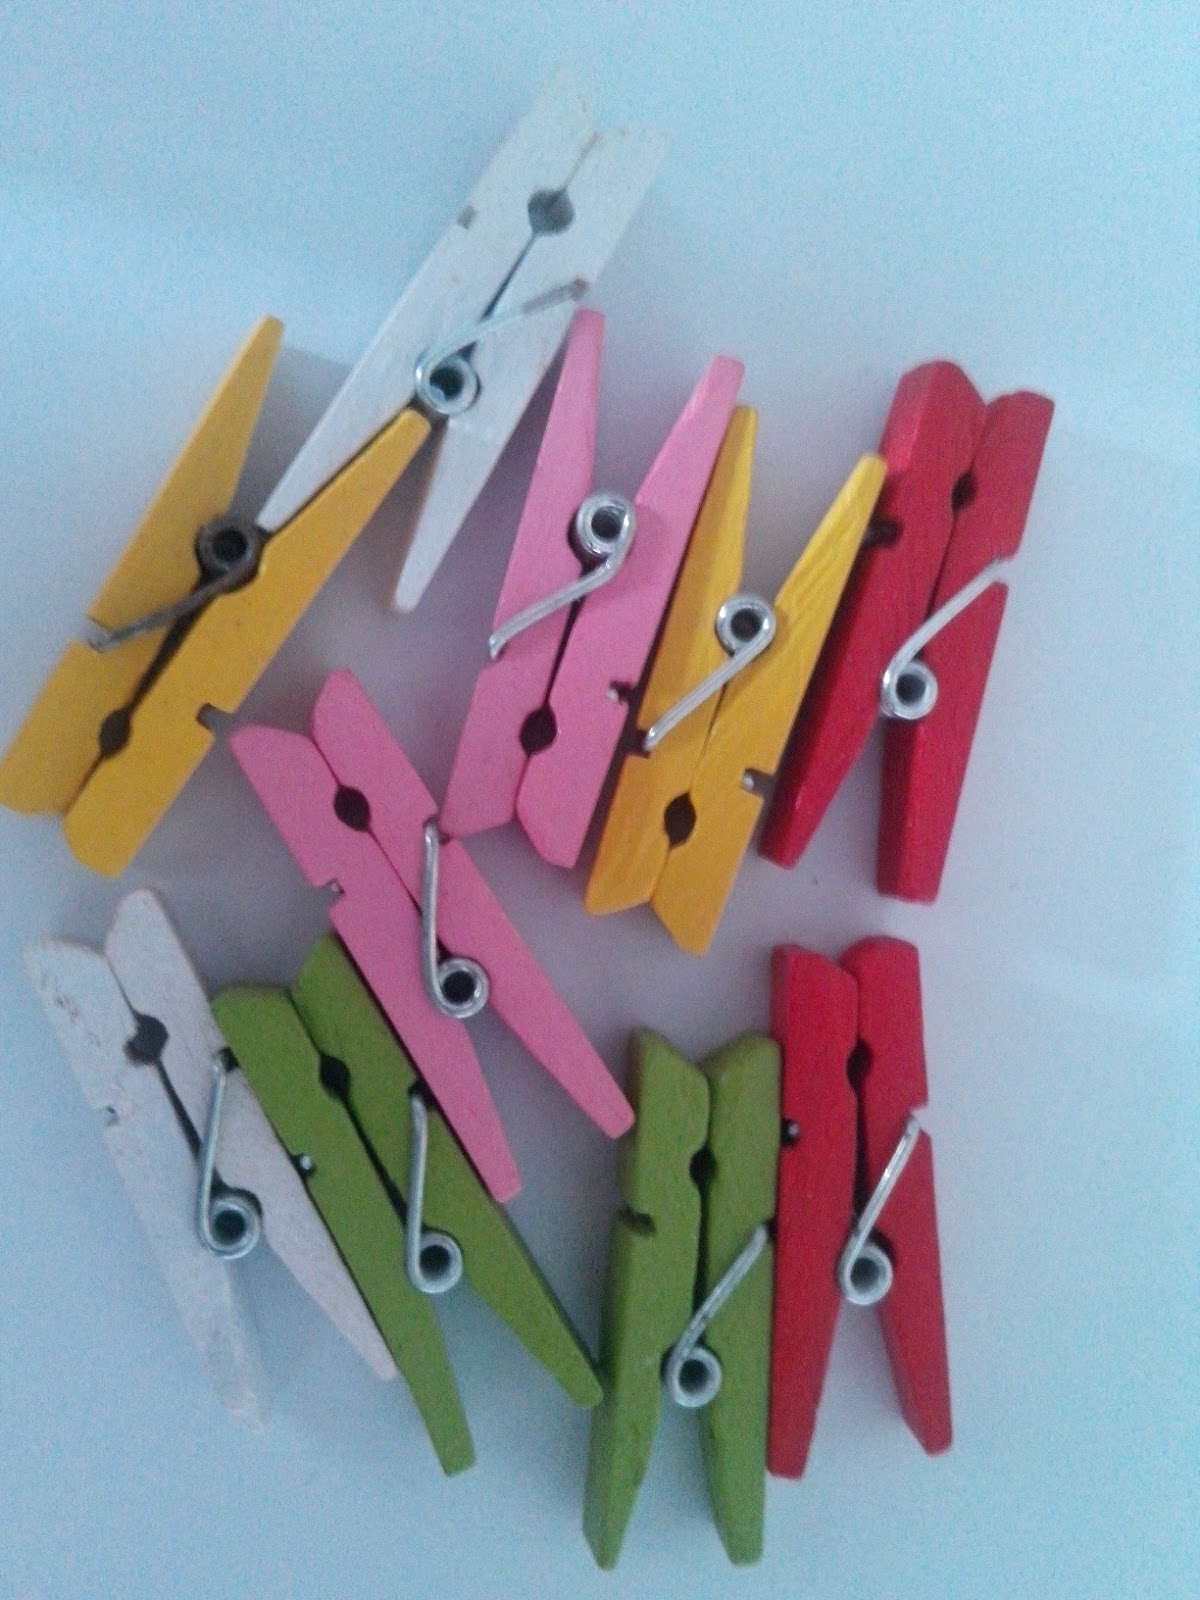 How to scrapbook materials - 5 1 75 Inch Colored Clips Pack Of 10 Pieces For Rs 40 Random Colors Are Mix Of Red White Green Orange Yellow